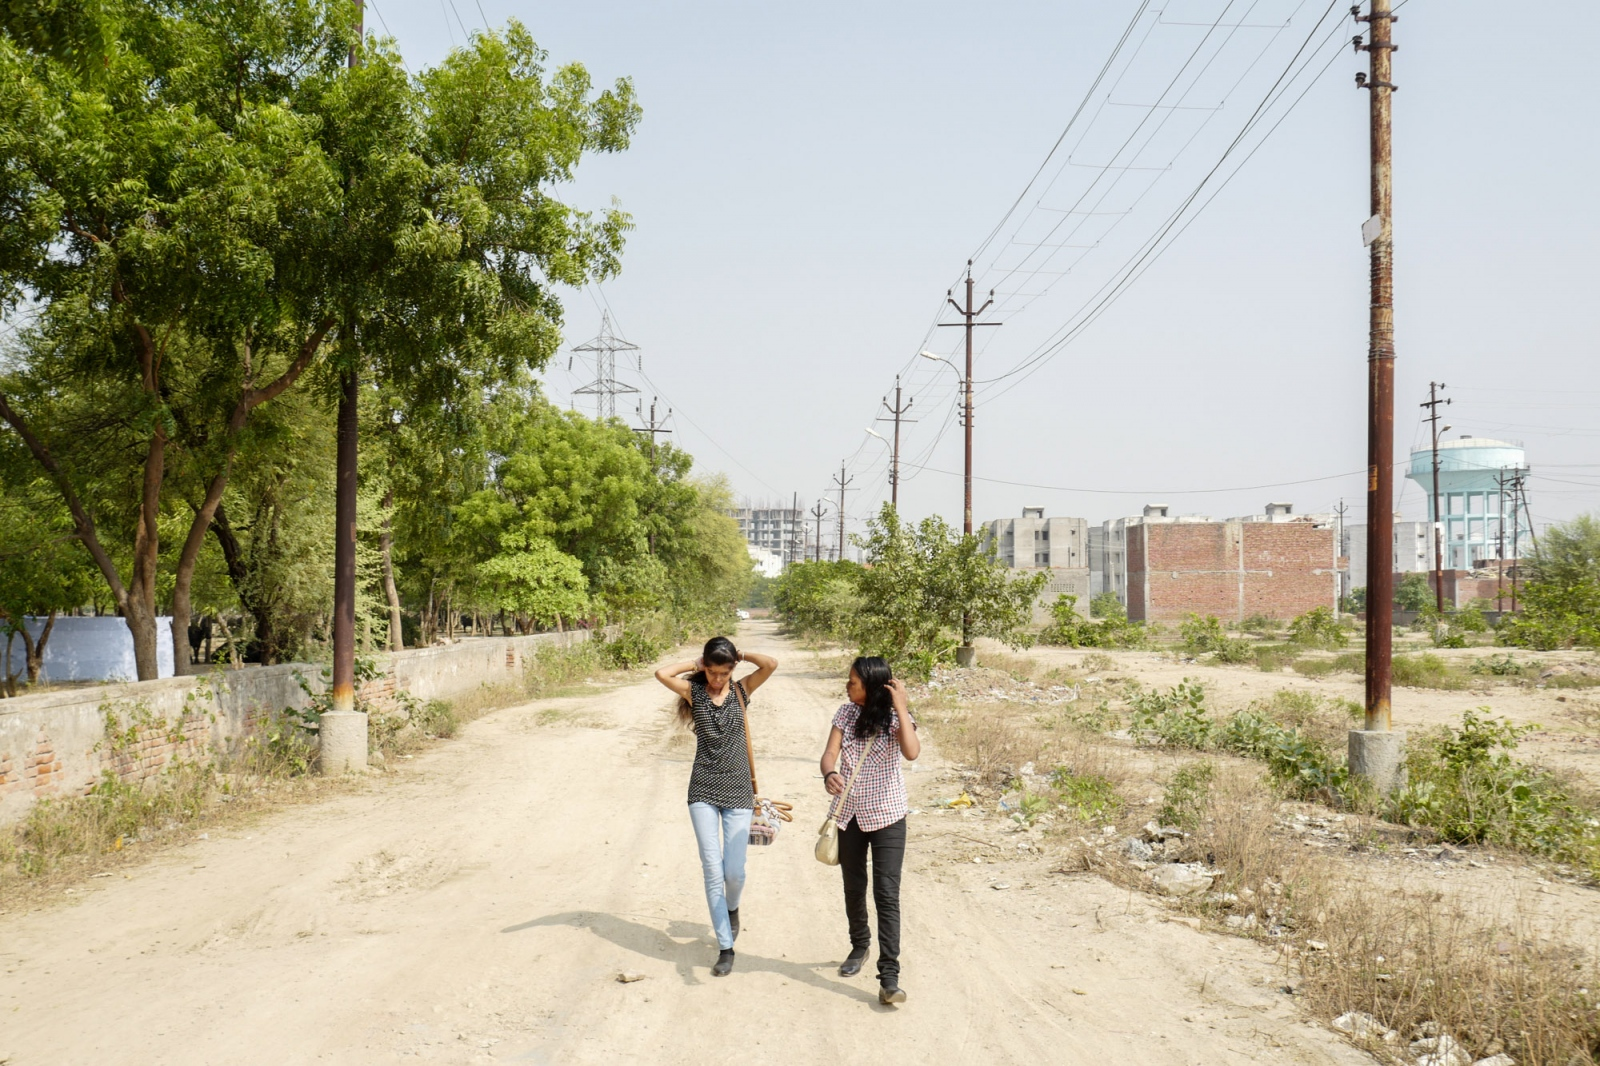 Agra, Uttar Pradesh, 03 November 2015, Ritu and Rupa, are going to work in the middle of the street behind their house in Agra.